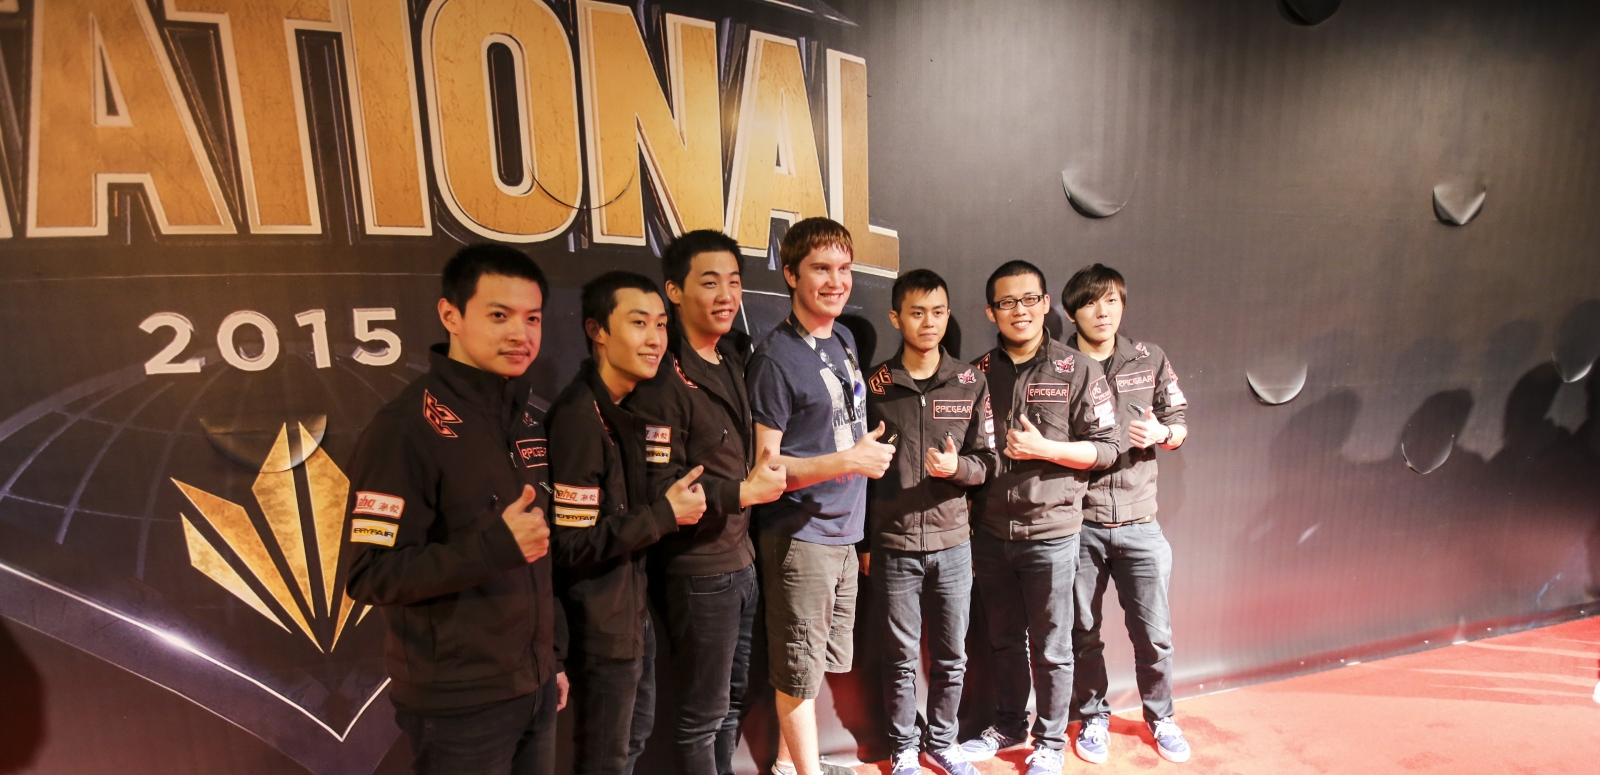 Their resulting momentum has continued to LMS Summer 2015, where ahq  dropped a combined three games (undefeated in matches) before winning the  Championship.